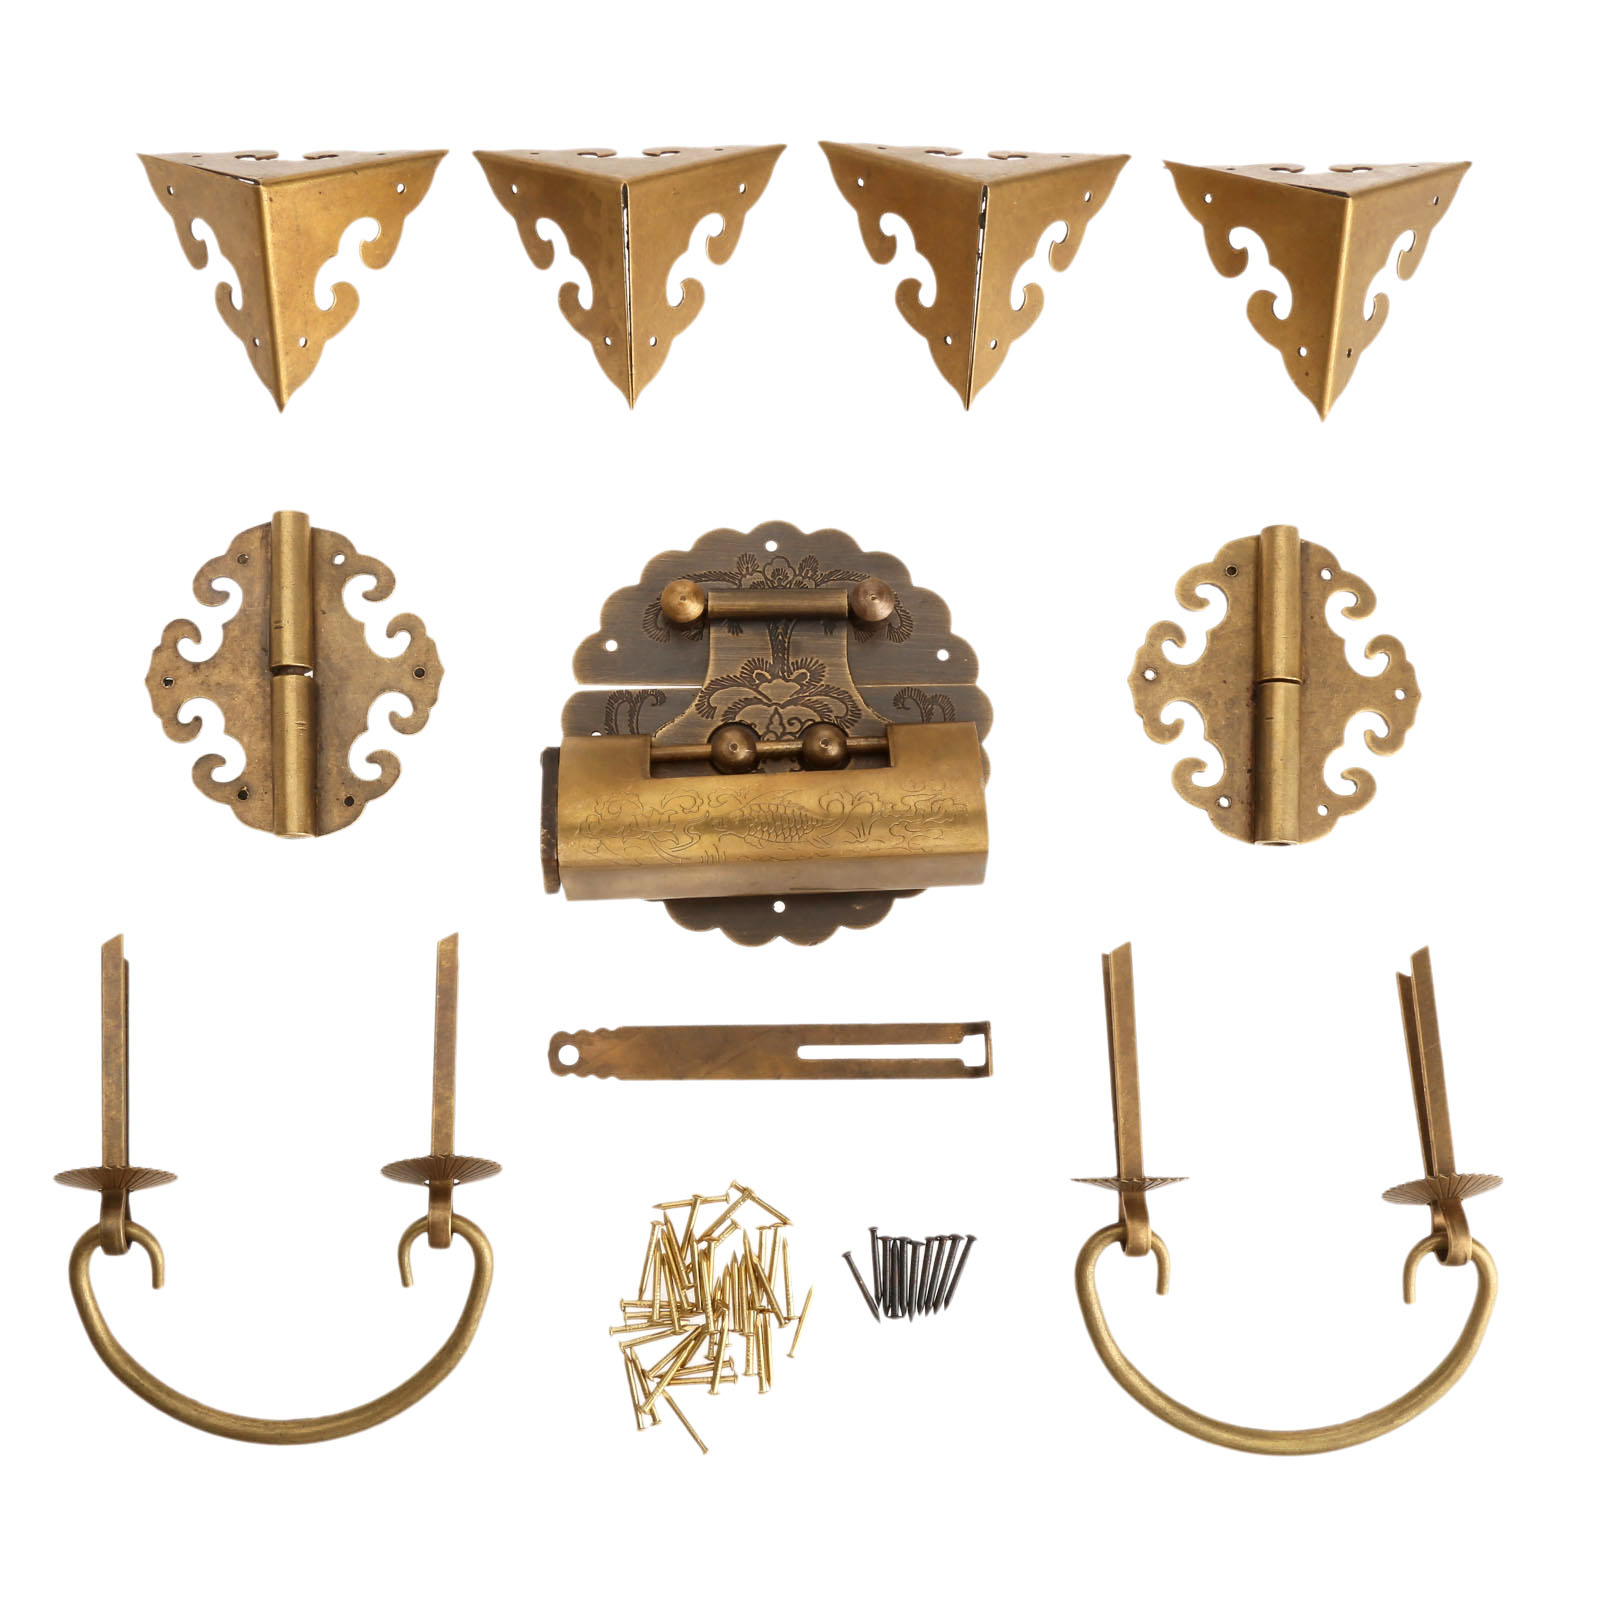 Brass Hardware Set Antique Wooden Box Knobs And Handles